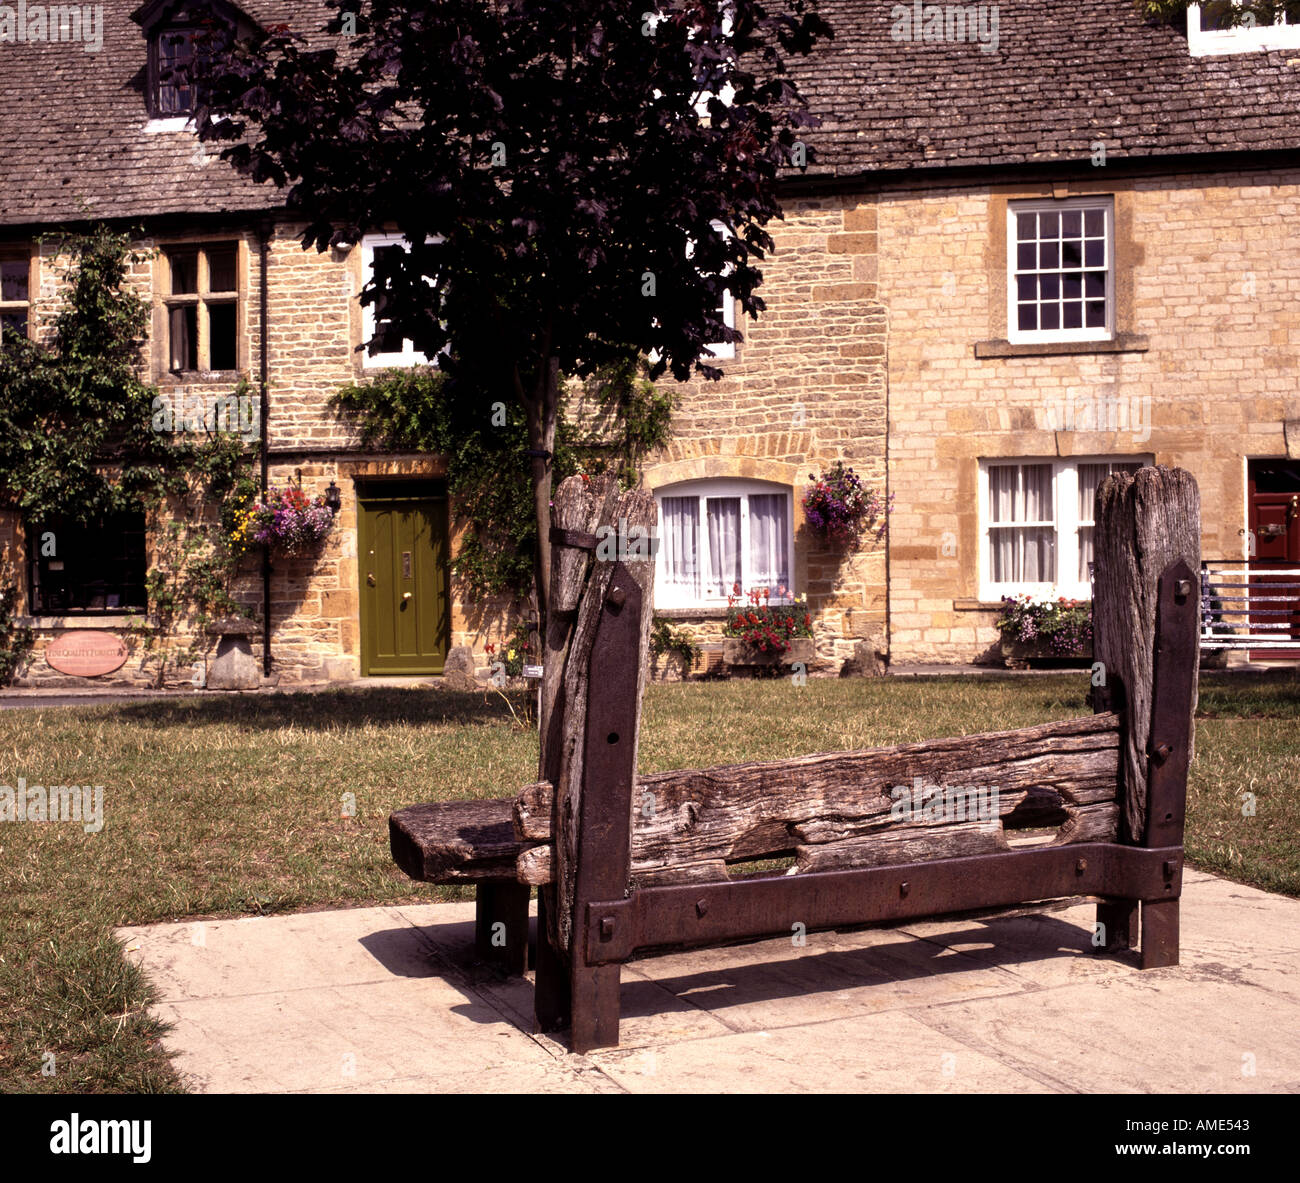 THE STOCKS IN STOW ON THE WOLD THE COTSWOLDS GLOUCESTERSHIRE ENGLAND UK Stock Photo